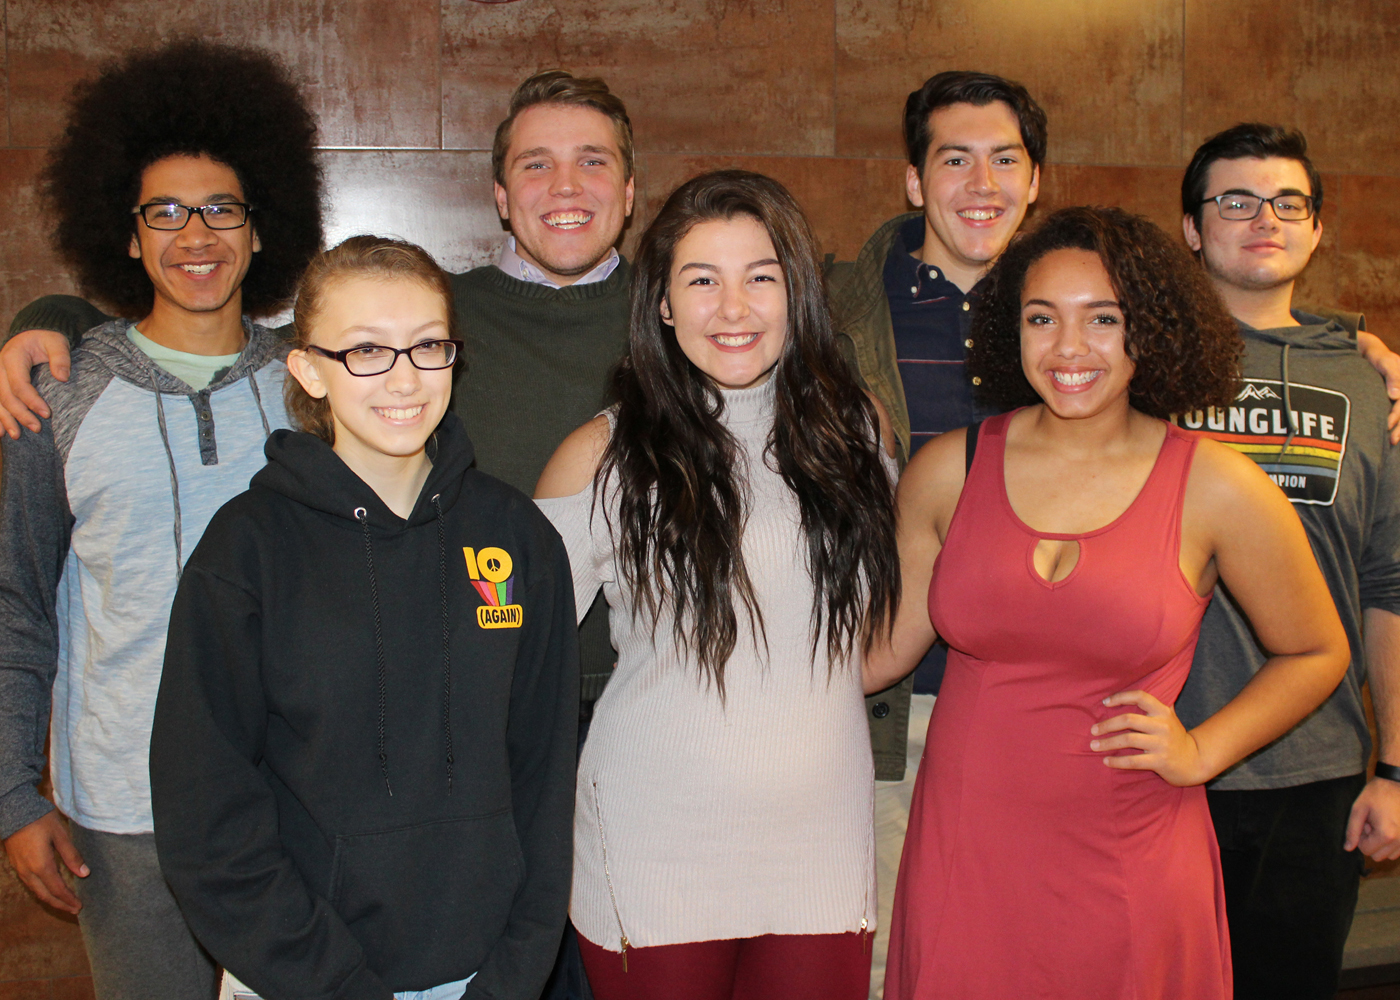 Byron-Bergen's top vocal talents prepare for their debut with the RPO Festival High School Chorale at the season's Gala Holiday Pops concert. (l-r) Jerome Spinks, Esther Wilkins, Mason Fuller, Stephanie Buell, Josh Phelps, Hannah VanSkiver and Brian Ireland. Not present: Sydney Brown. Provided photo